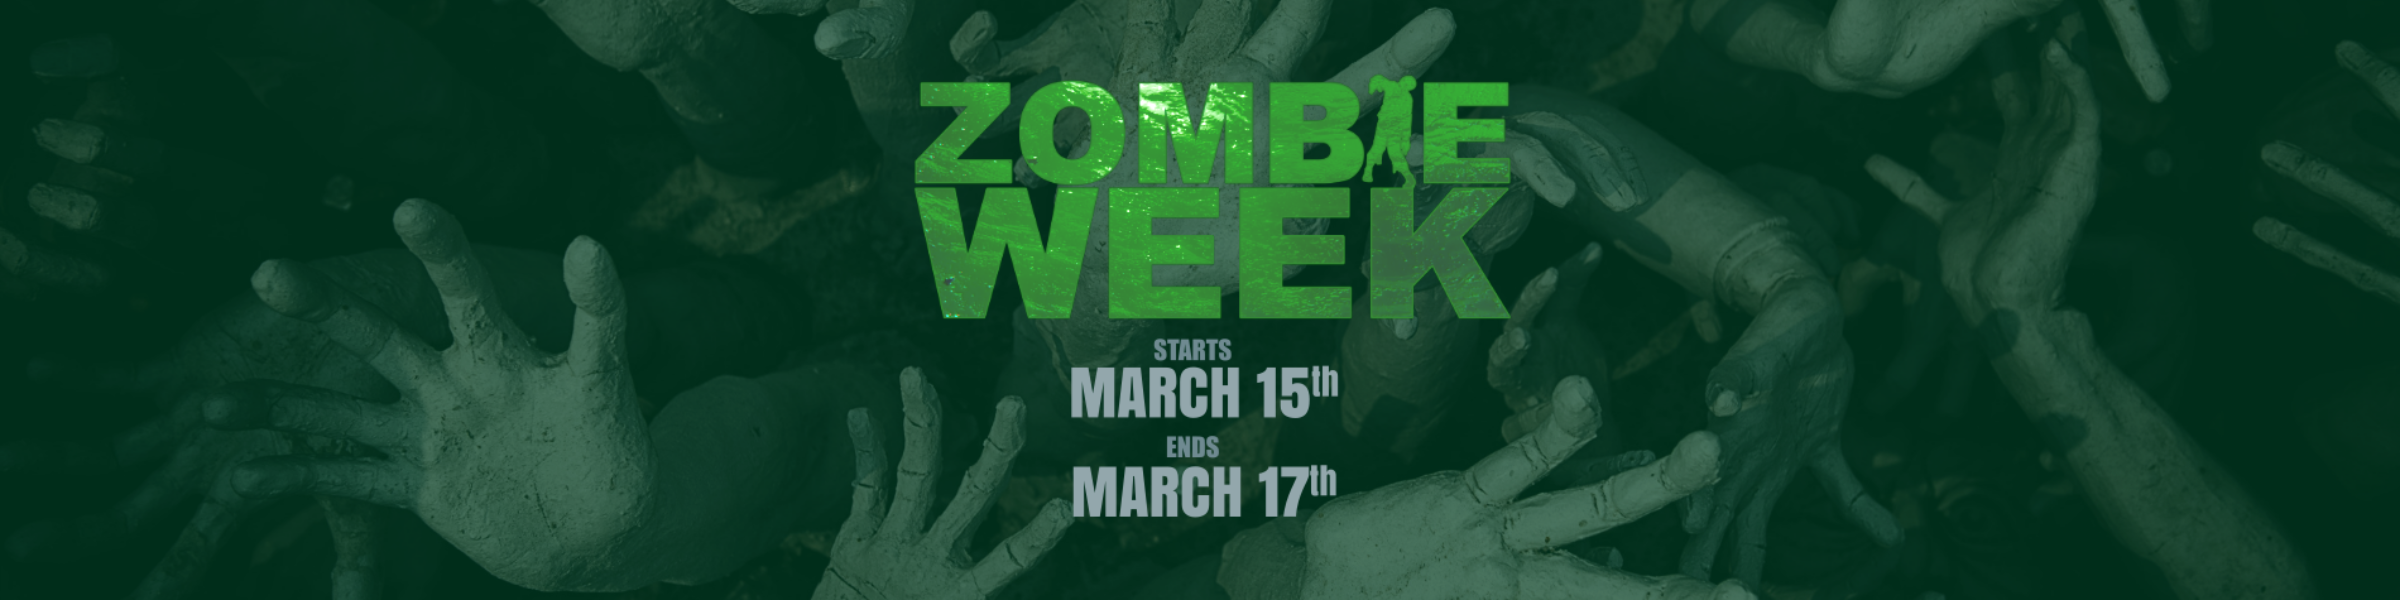 Zombie Week at 18 North Central